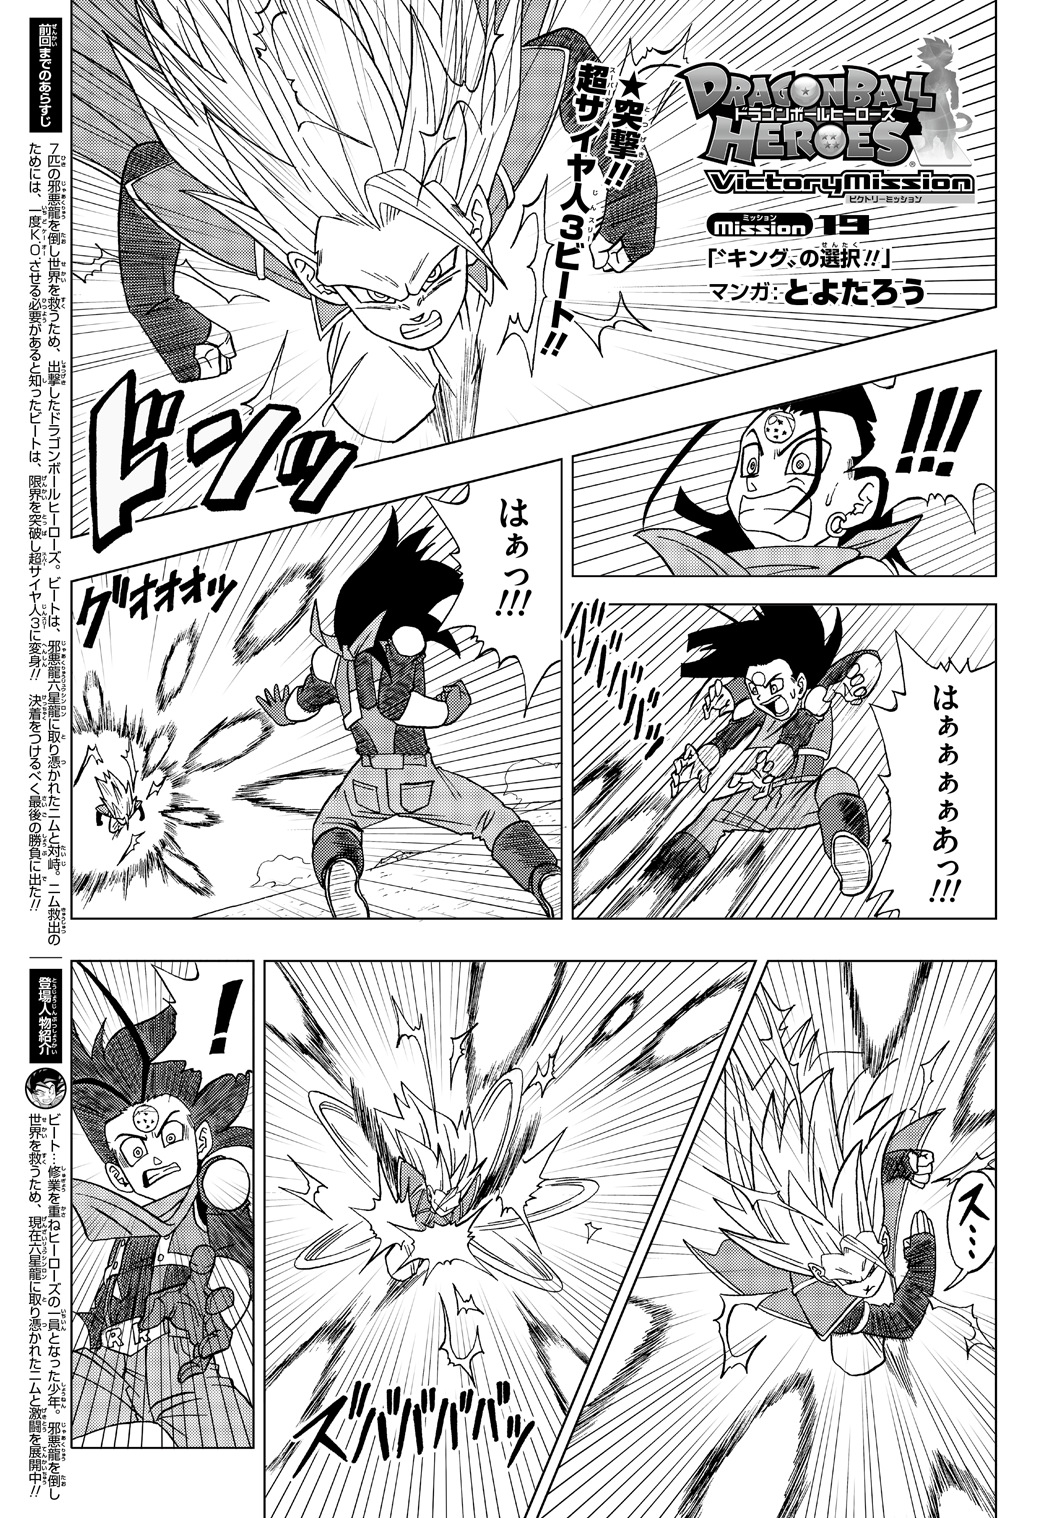 Dragon Ball Heroes Victory Mission Chapitre 019